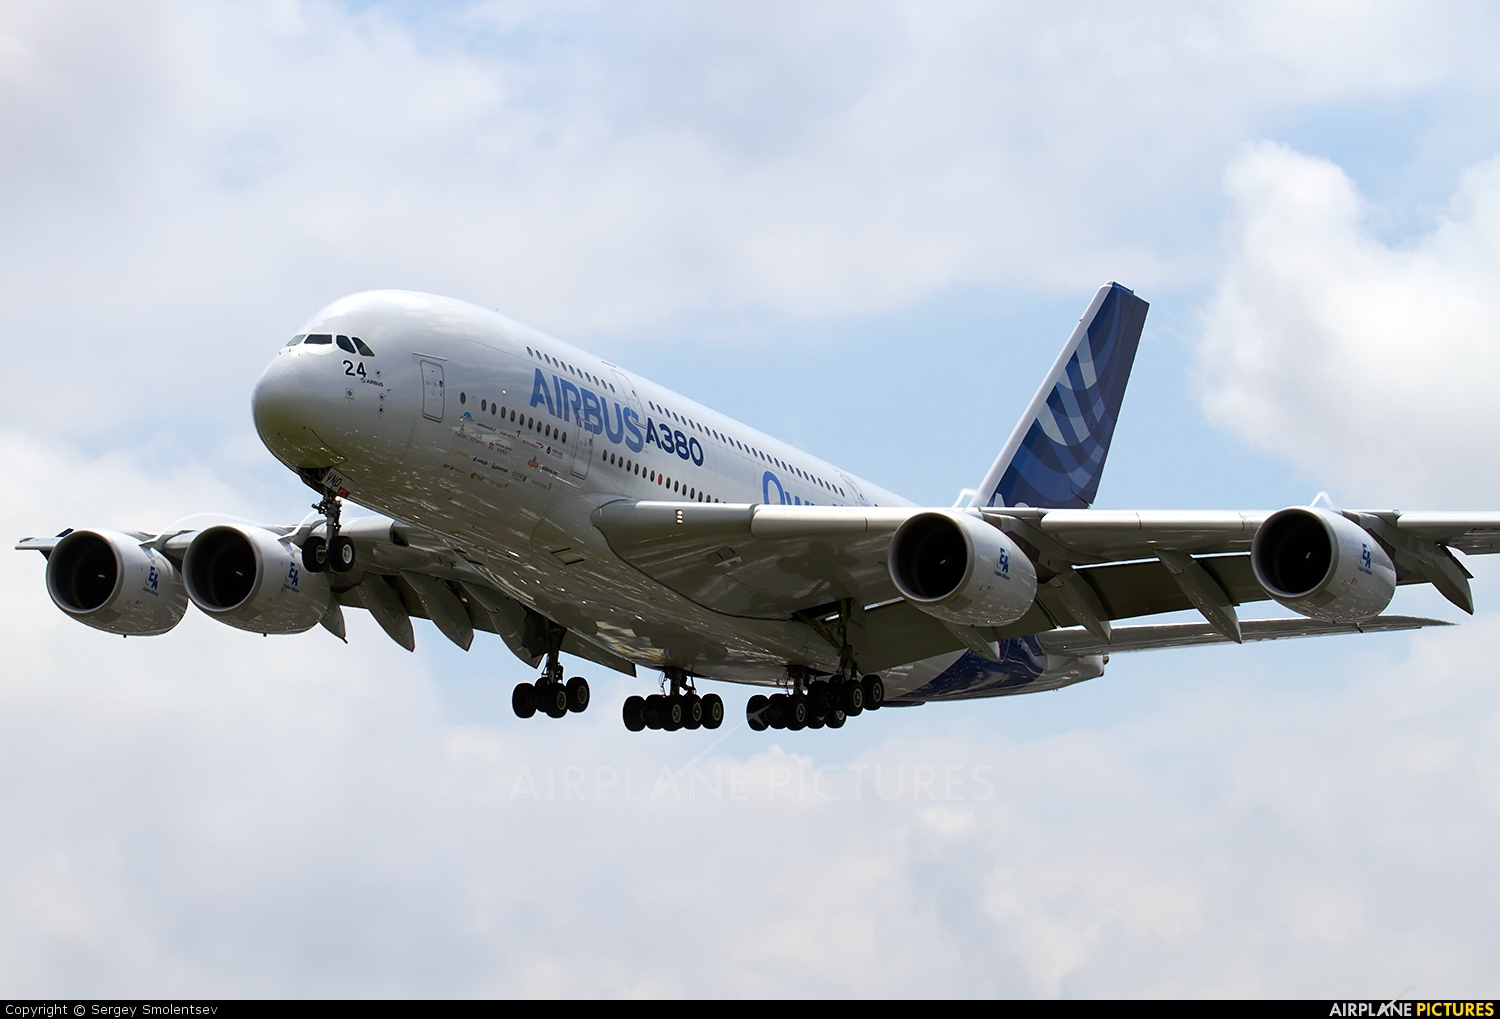 Airbus Industrie F-WWDD aircraft at Paris - Le Bourget